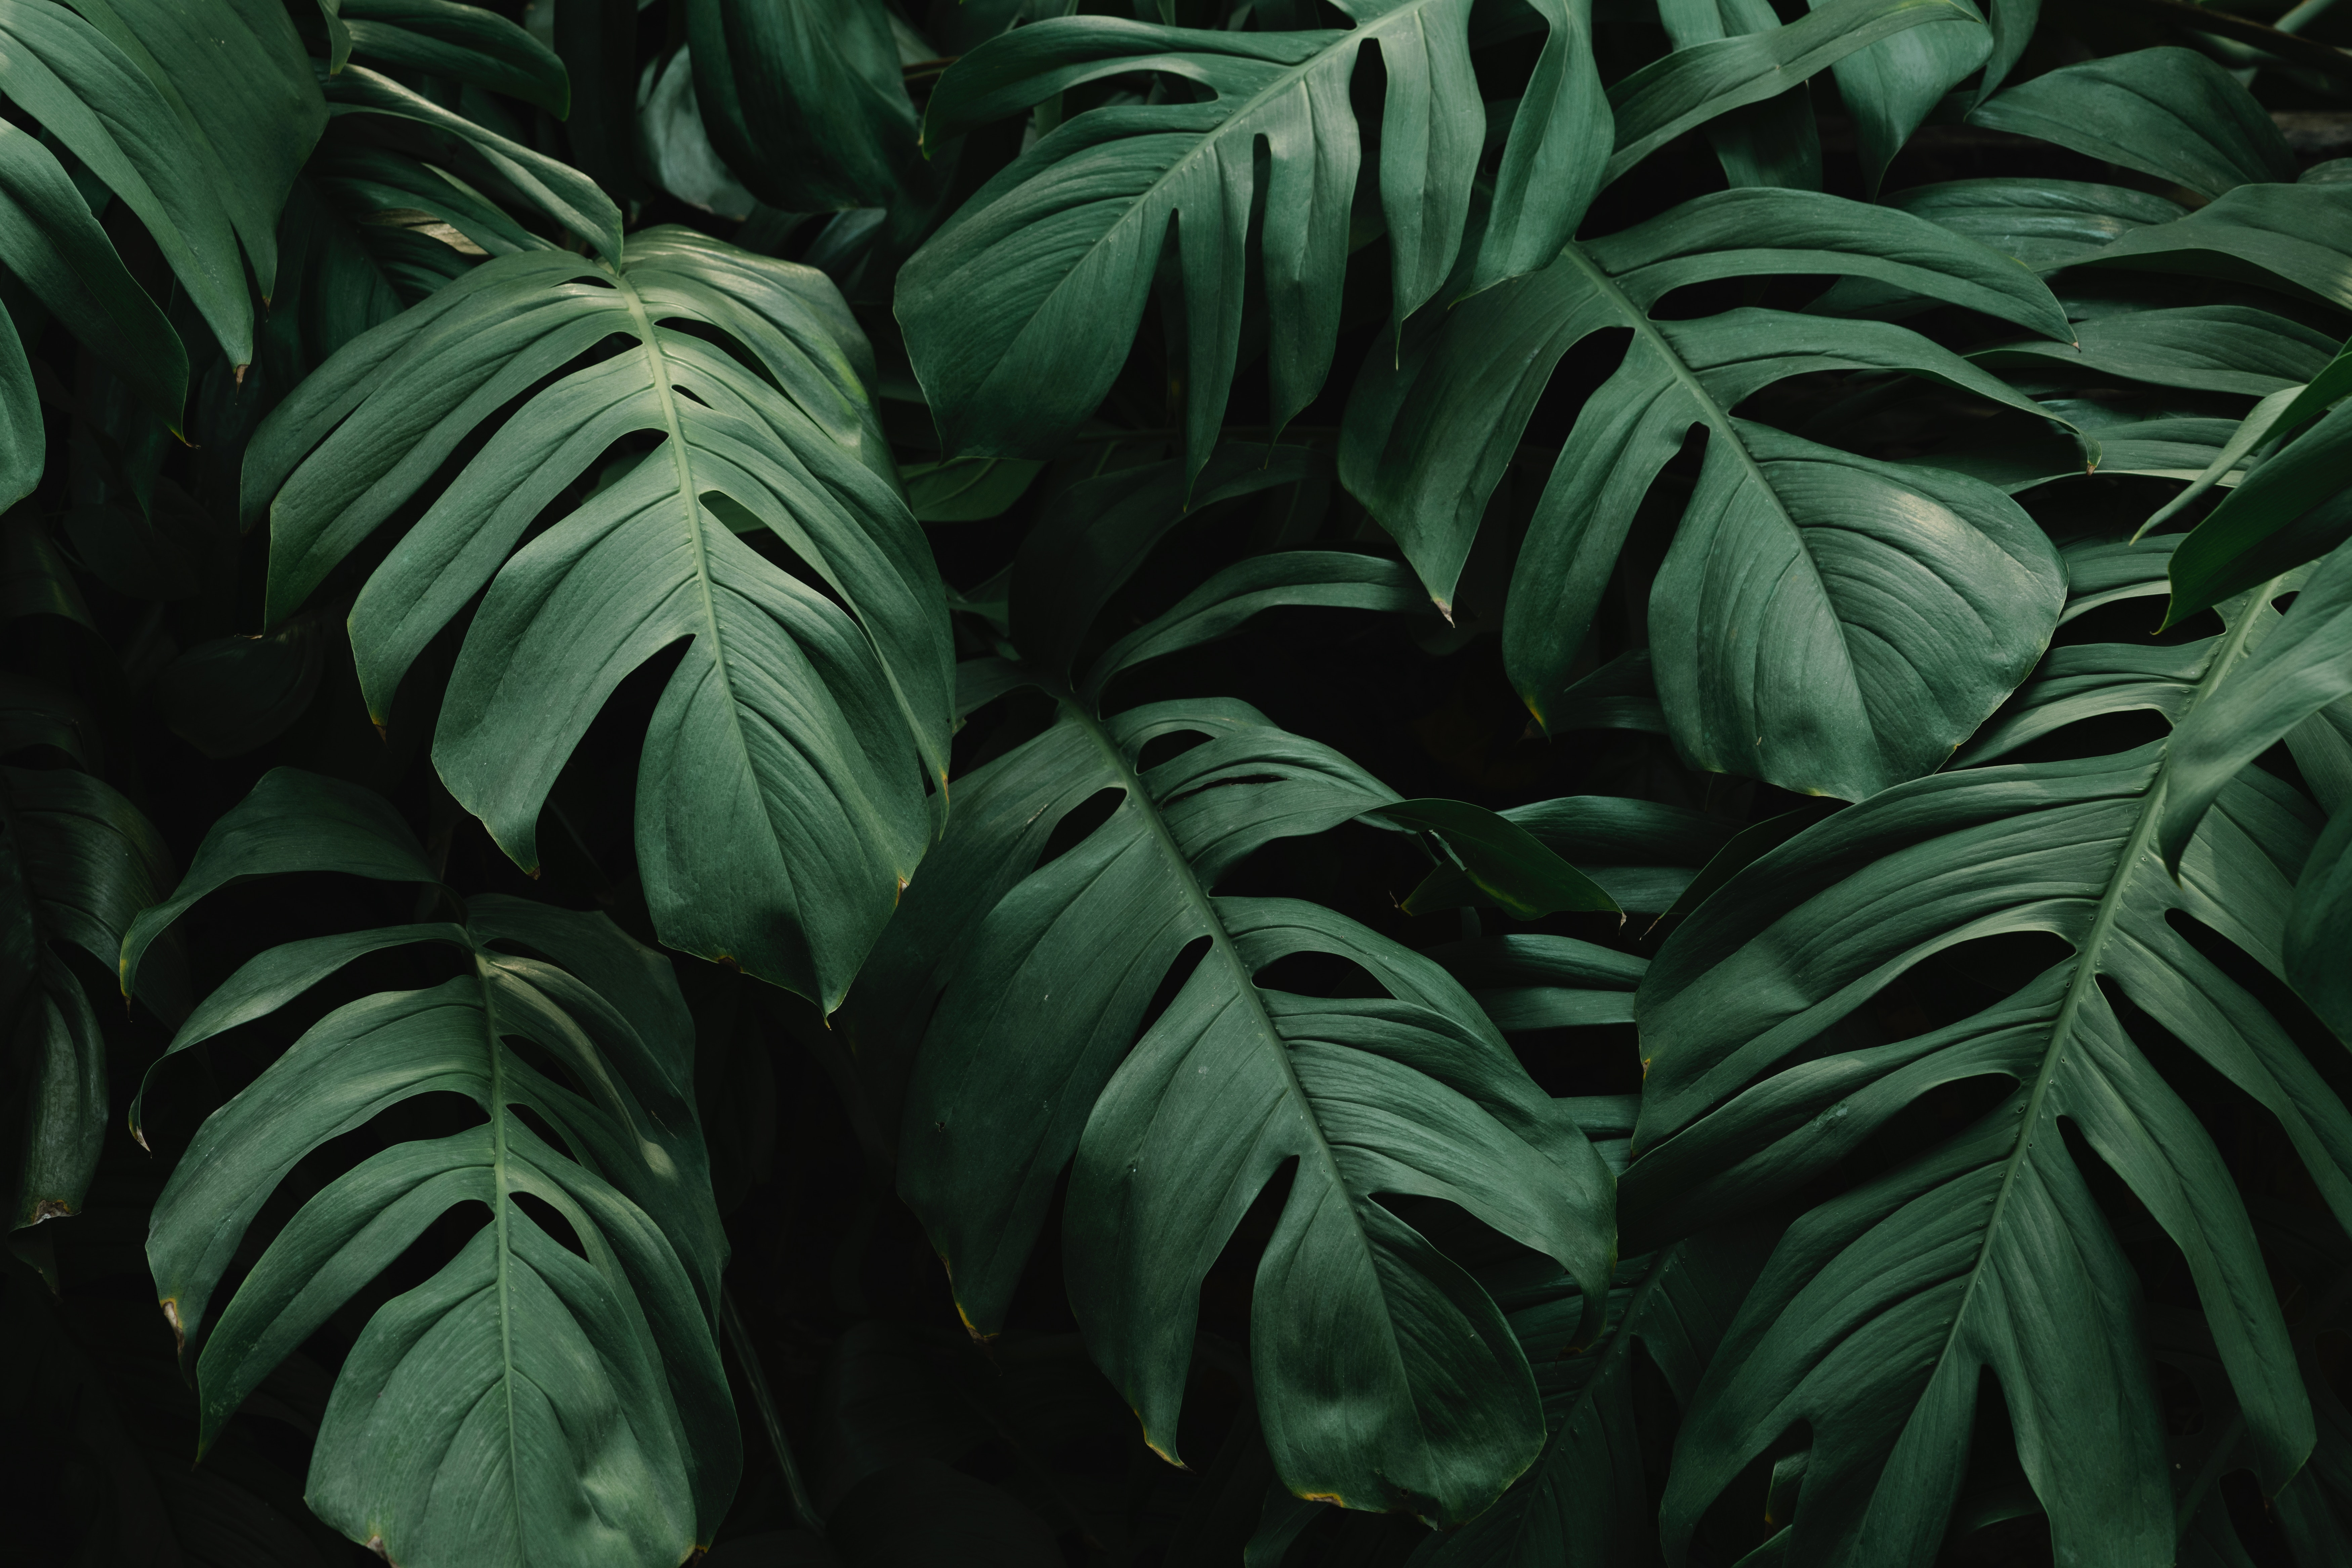 117584 download wallpaper Leaves, Dark, Nature, Plant, Vegetation screensavers and pictures for free